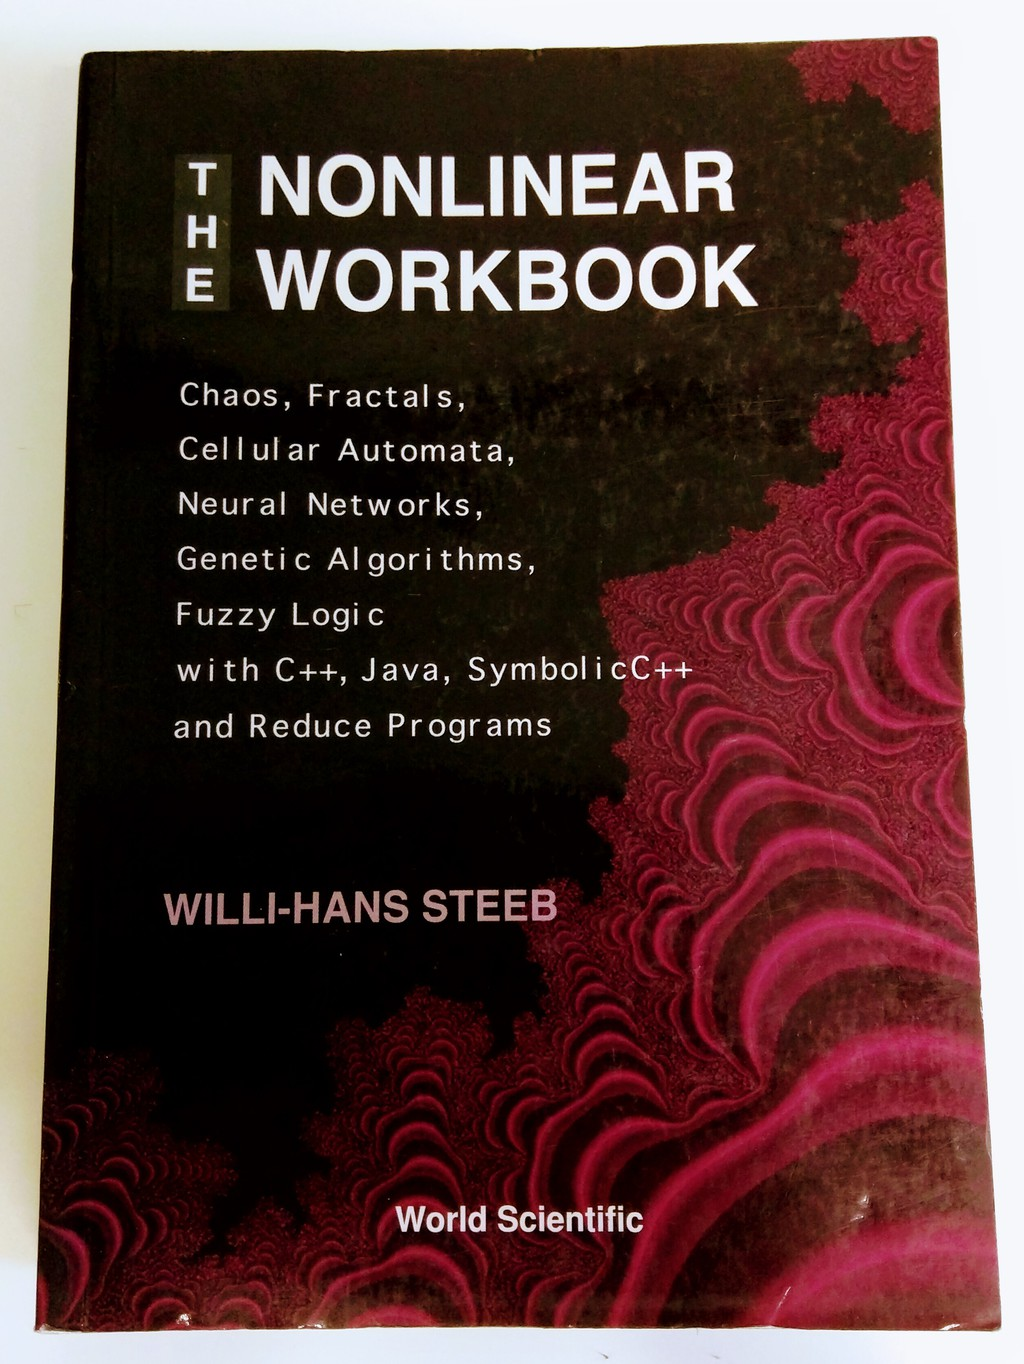 non-linear workbook